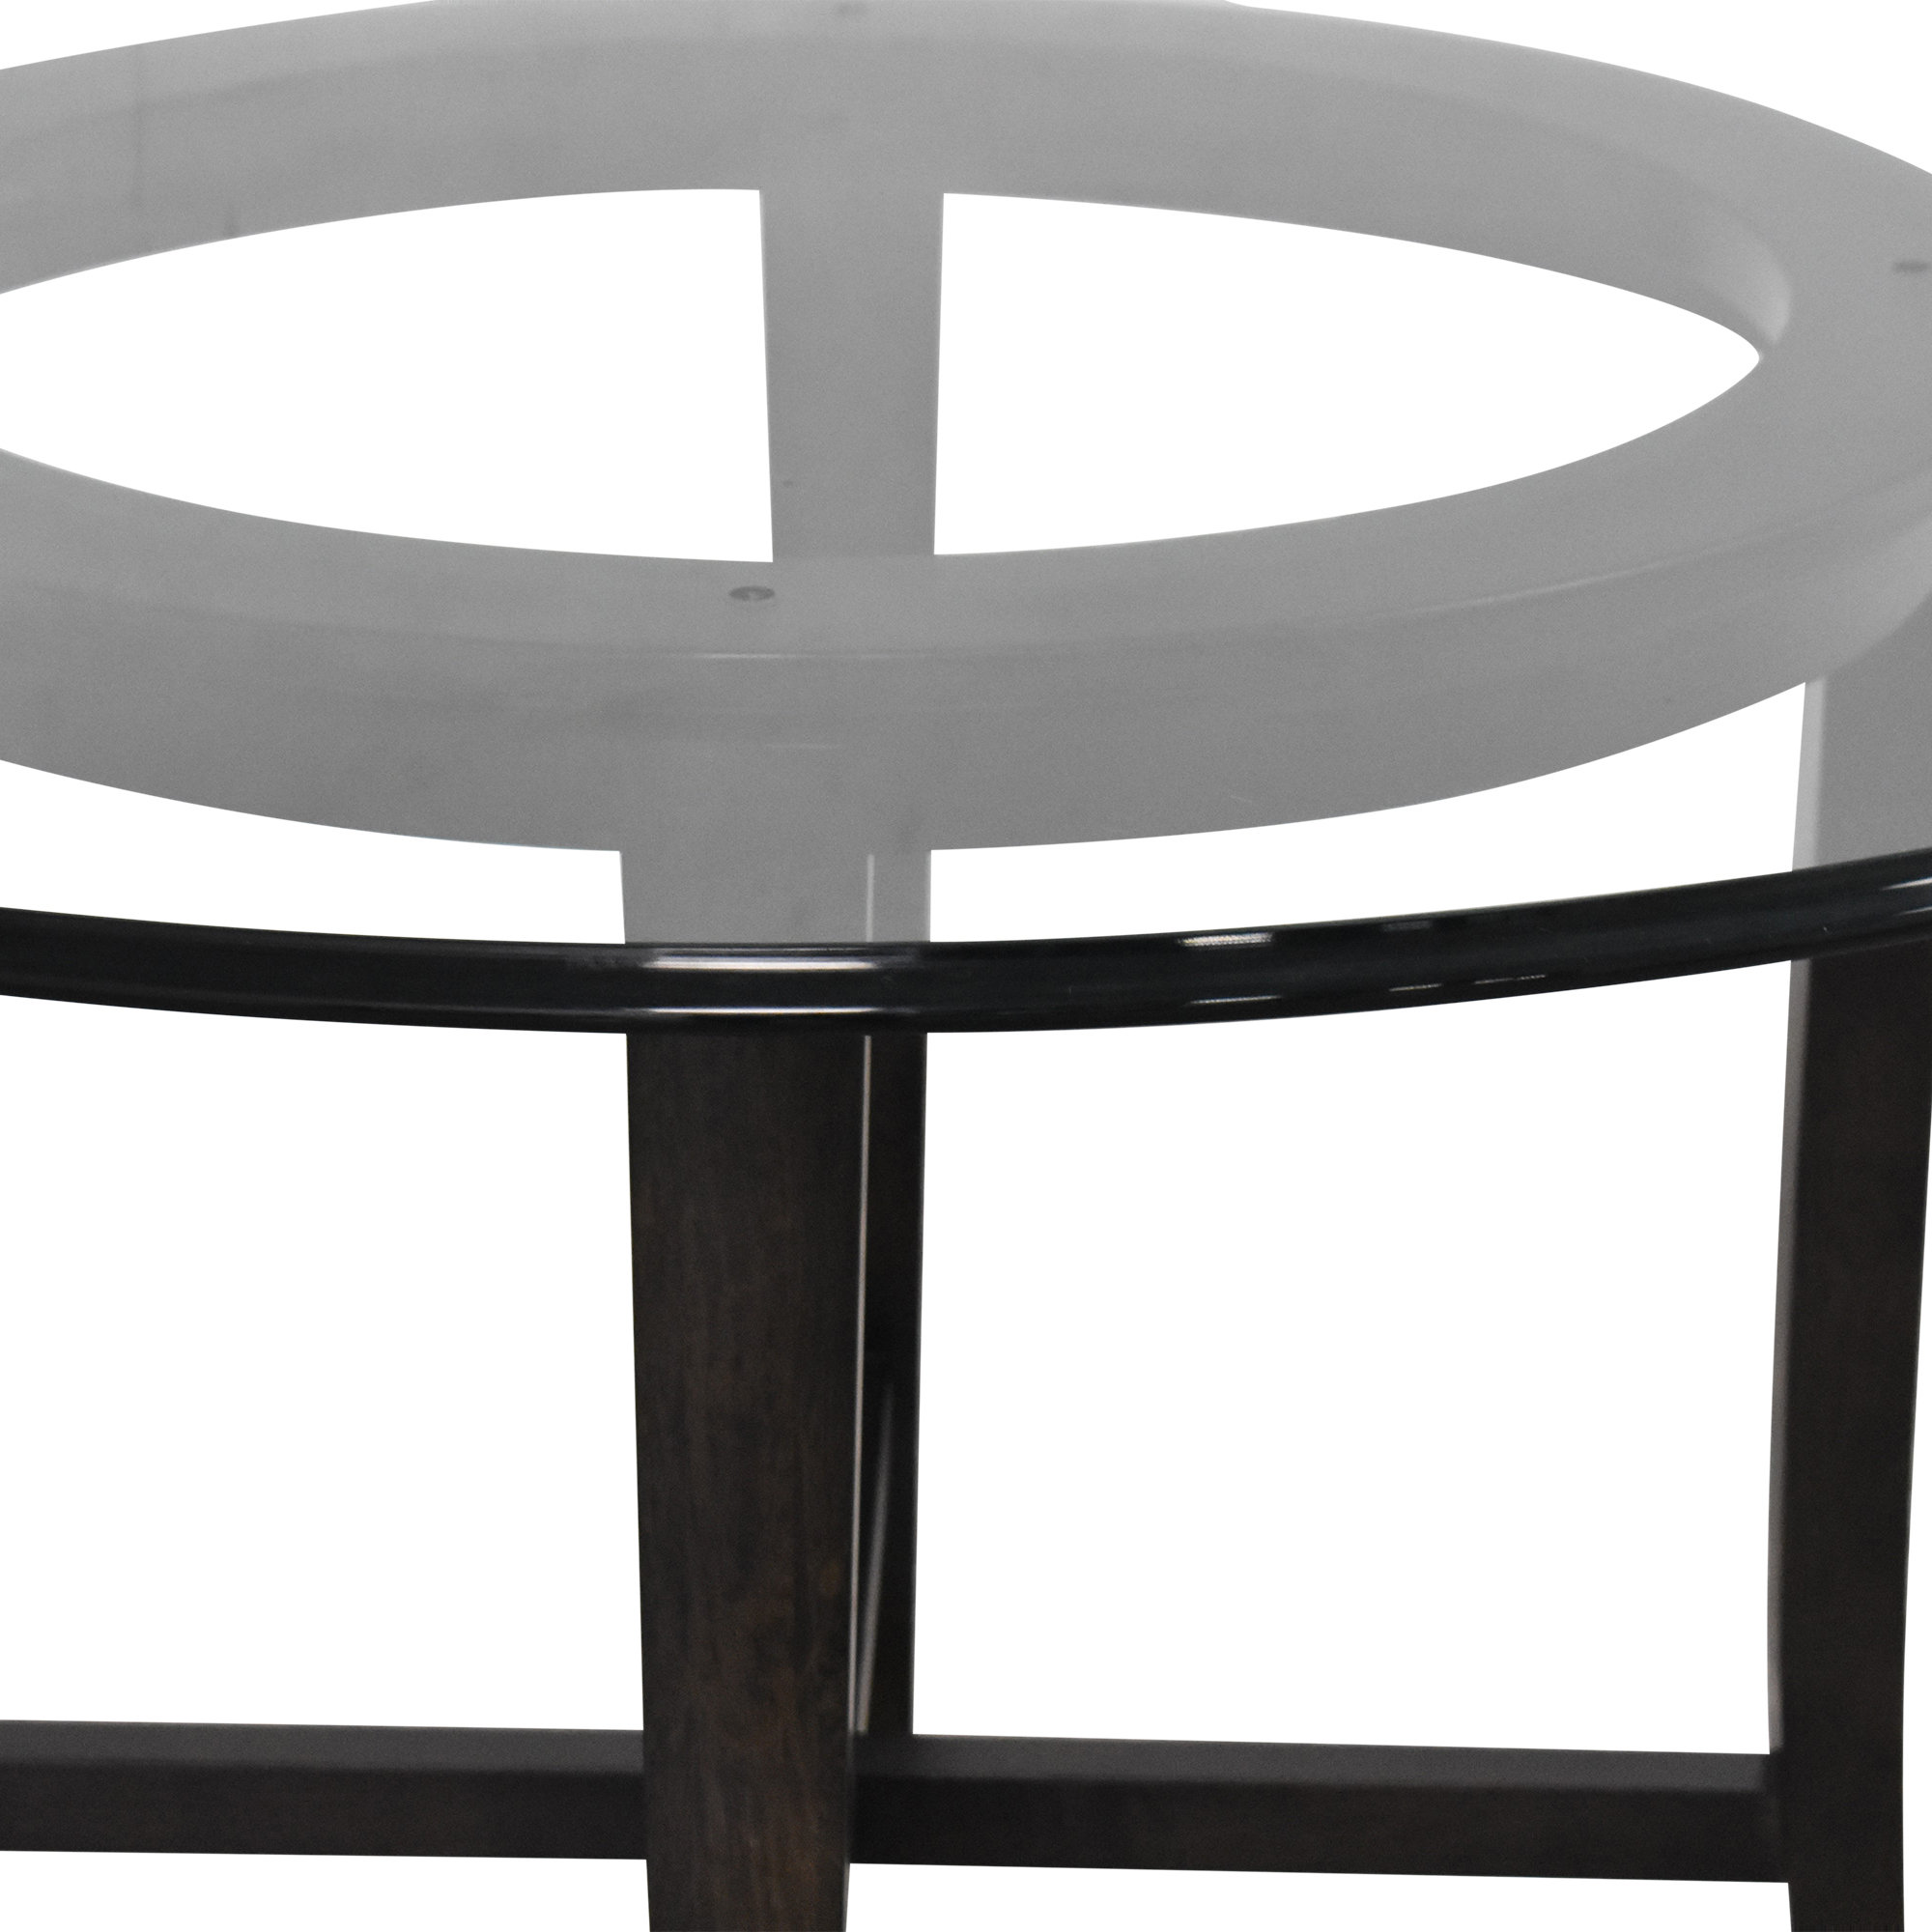 Crate & Barrel Crate & Barrel Halo Round Dining Table ct